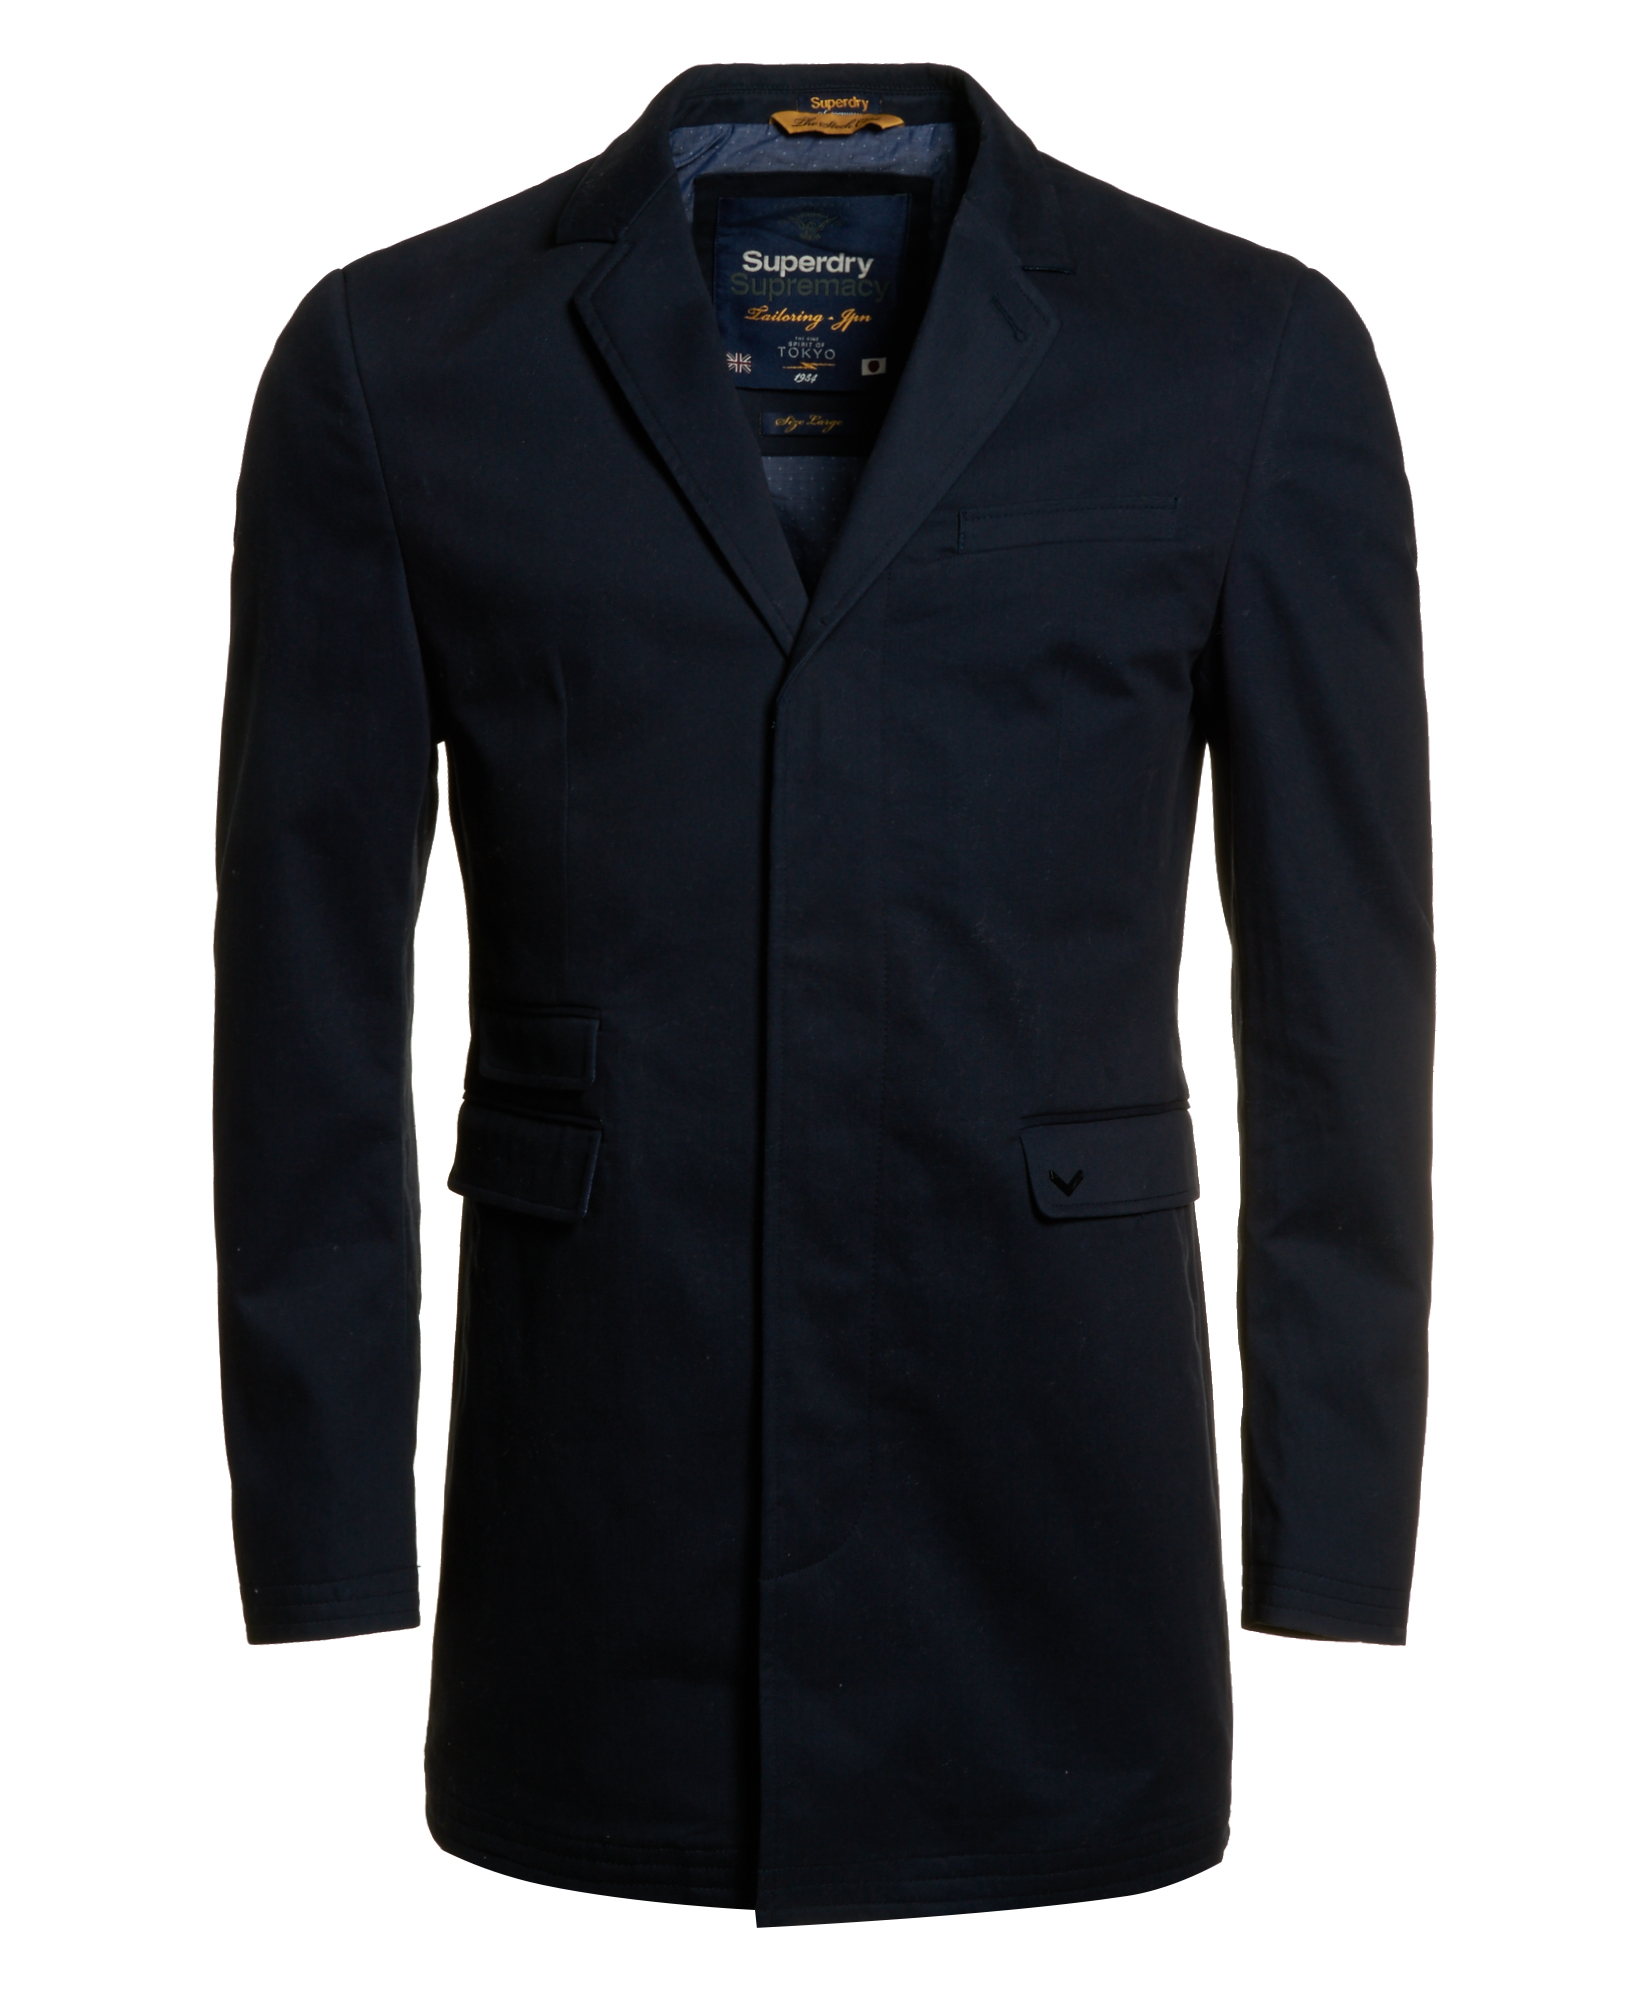 neue herren superdry jacke twilight stock coat dark navy ebay. Black Bedroom Furniture Sets. Home Design Ideas